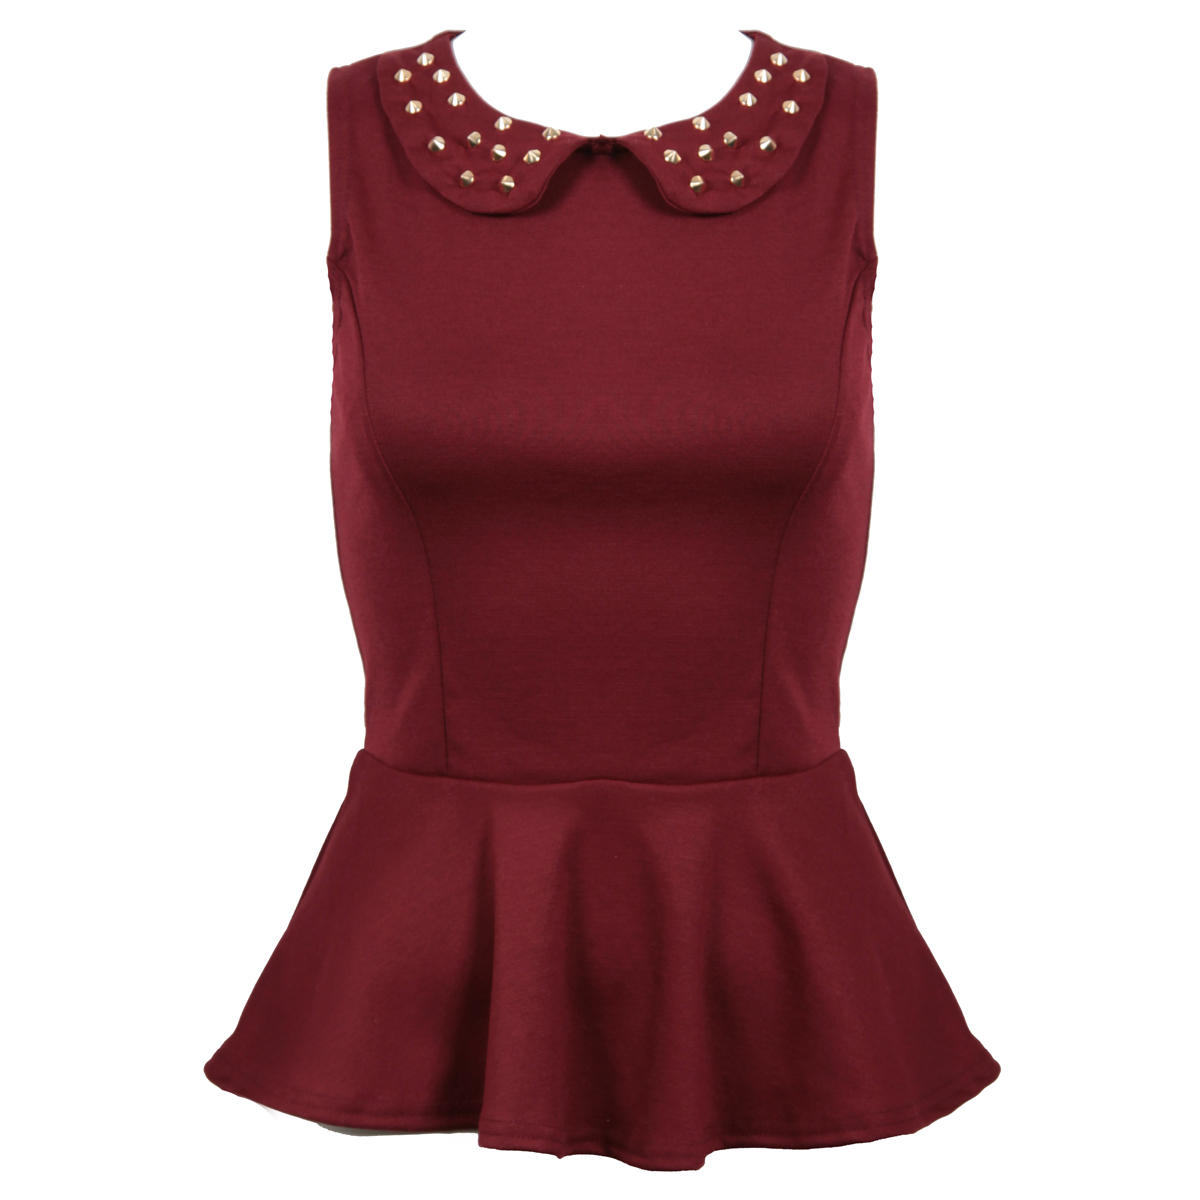 Wine Peplum Top with Studded Collar Preview